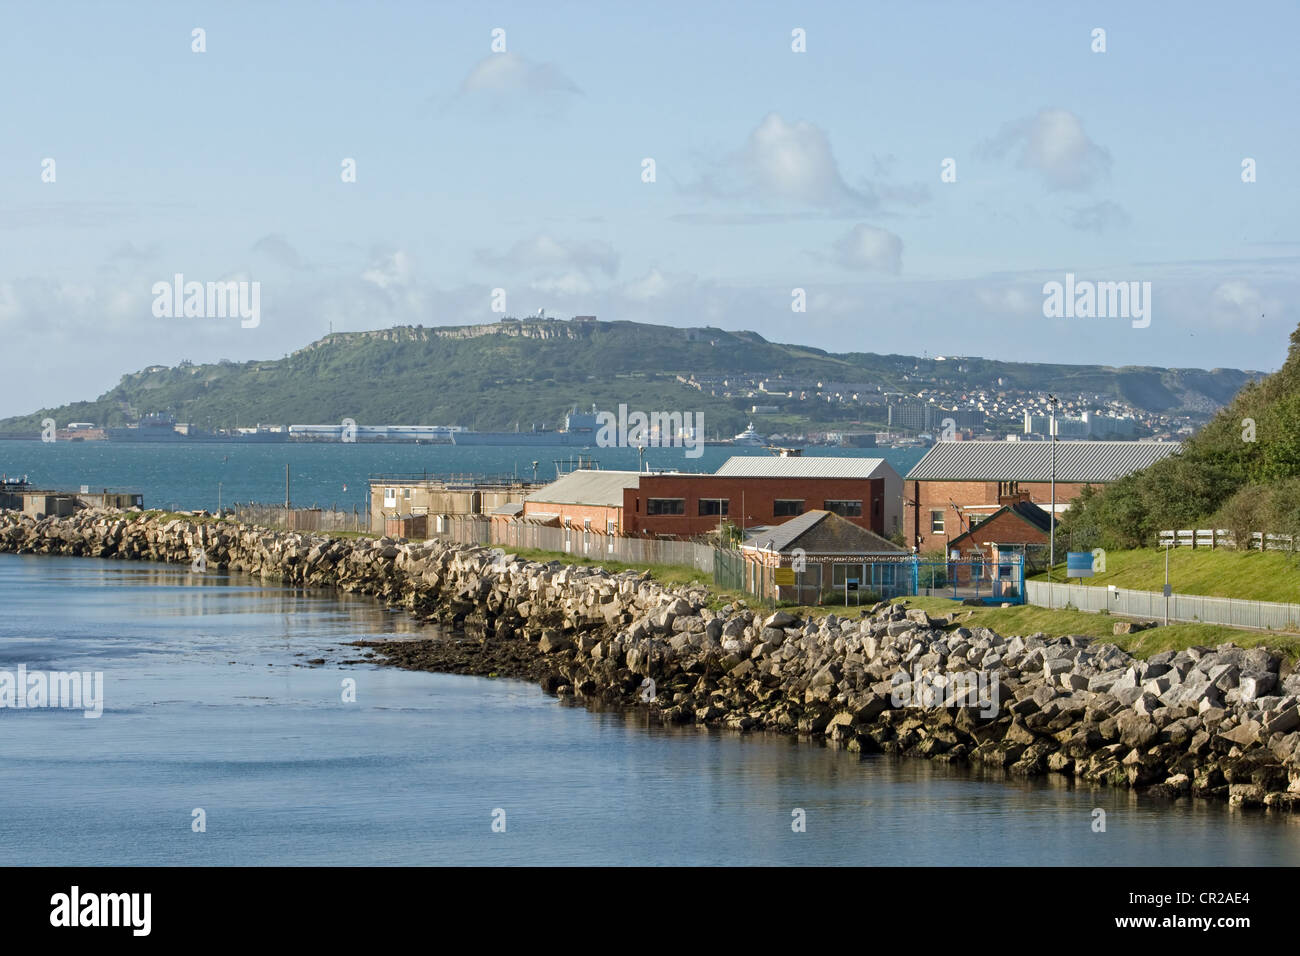 Looking from Newton's Cove,Weymouth to the Isle of Portland. - Stock Image